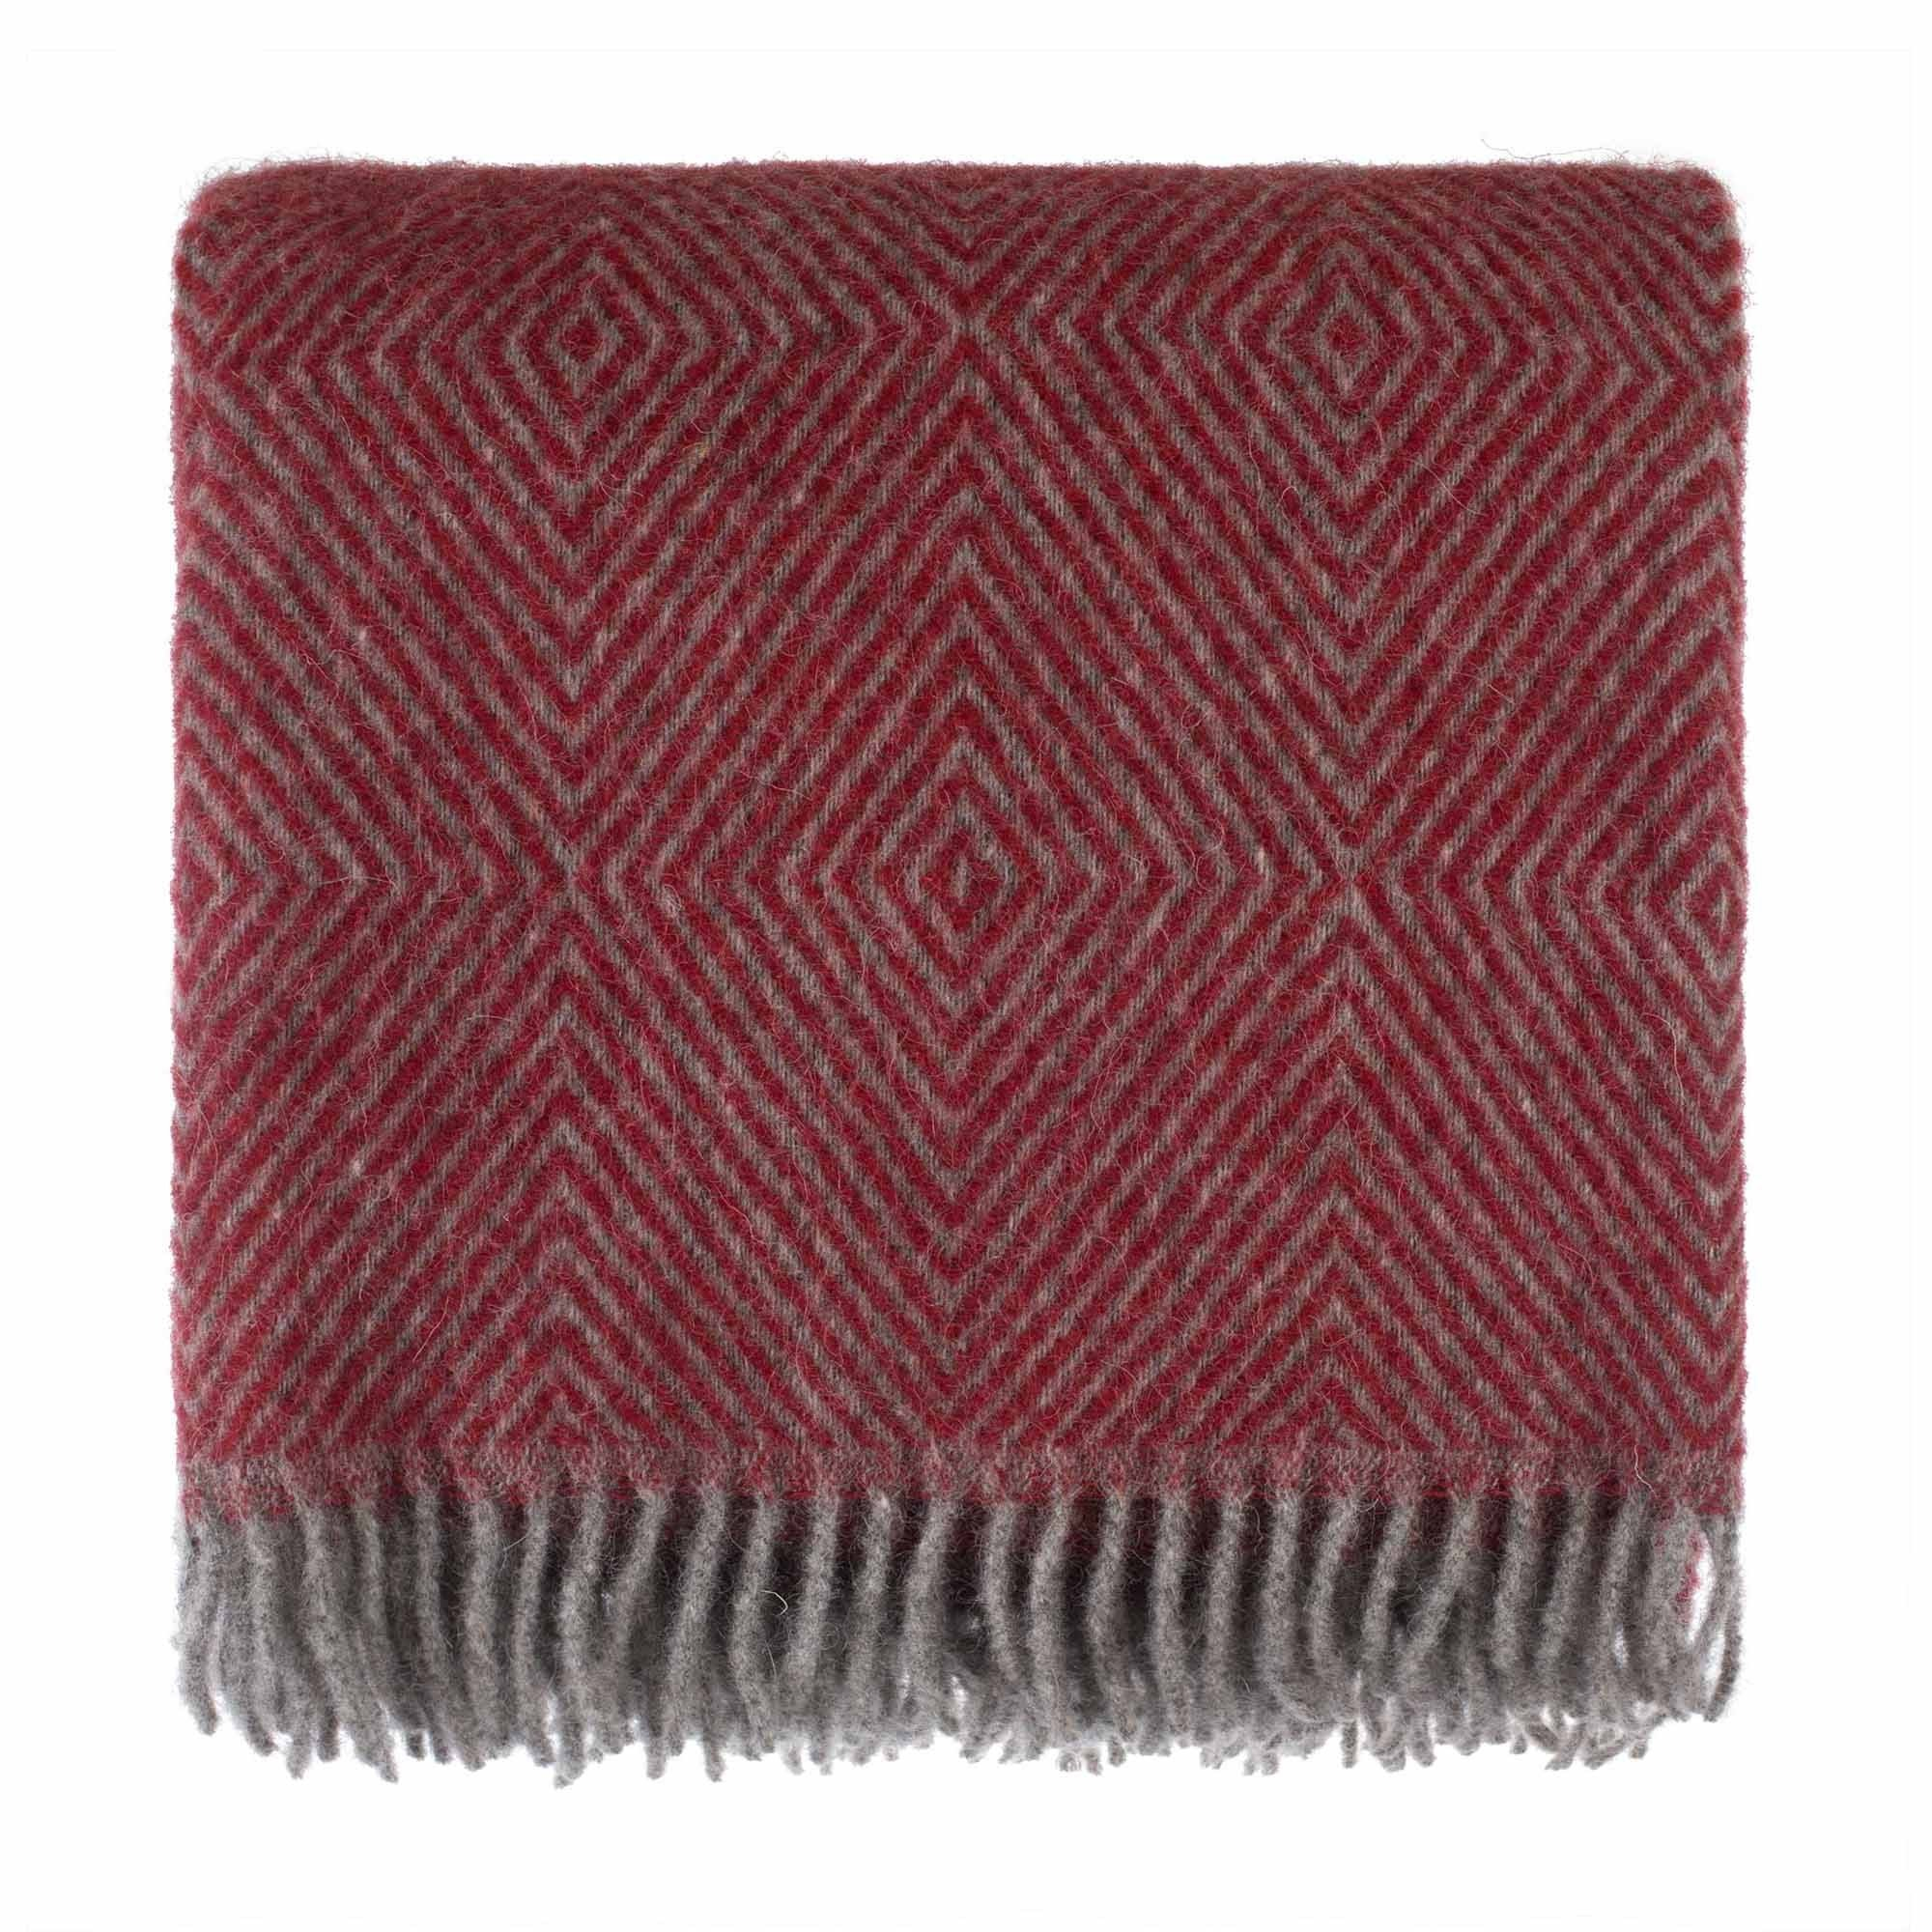 URBANARA 100% Pure Scandinavian Wool Throw Gotland 55x87 Red/Grey with Fringe — Virgin Wool Blanket with Decorative Diamond Weave Design — Perfect for Your Couch, Sofa, Bedroom, Twin Size Bed